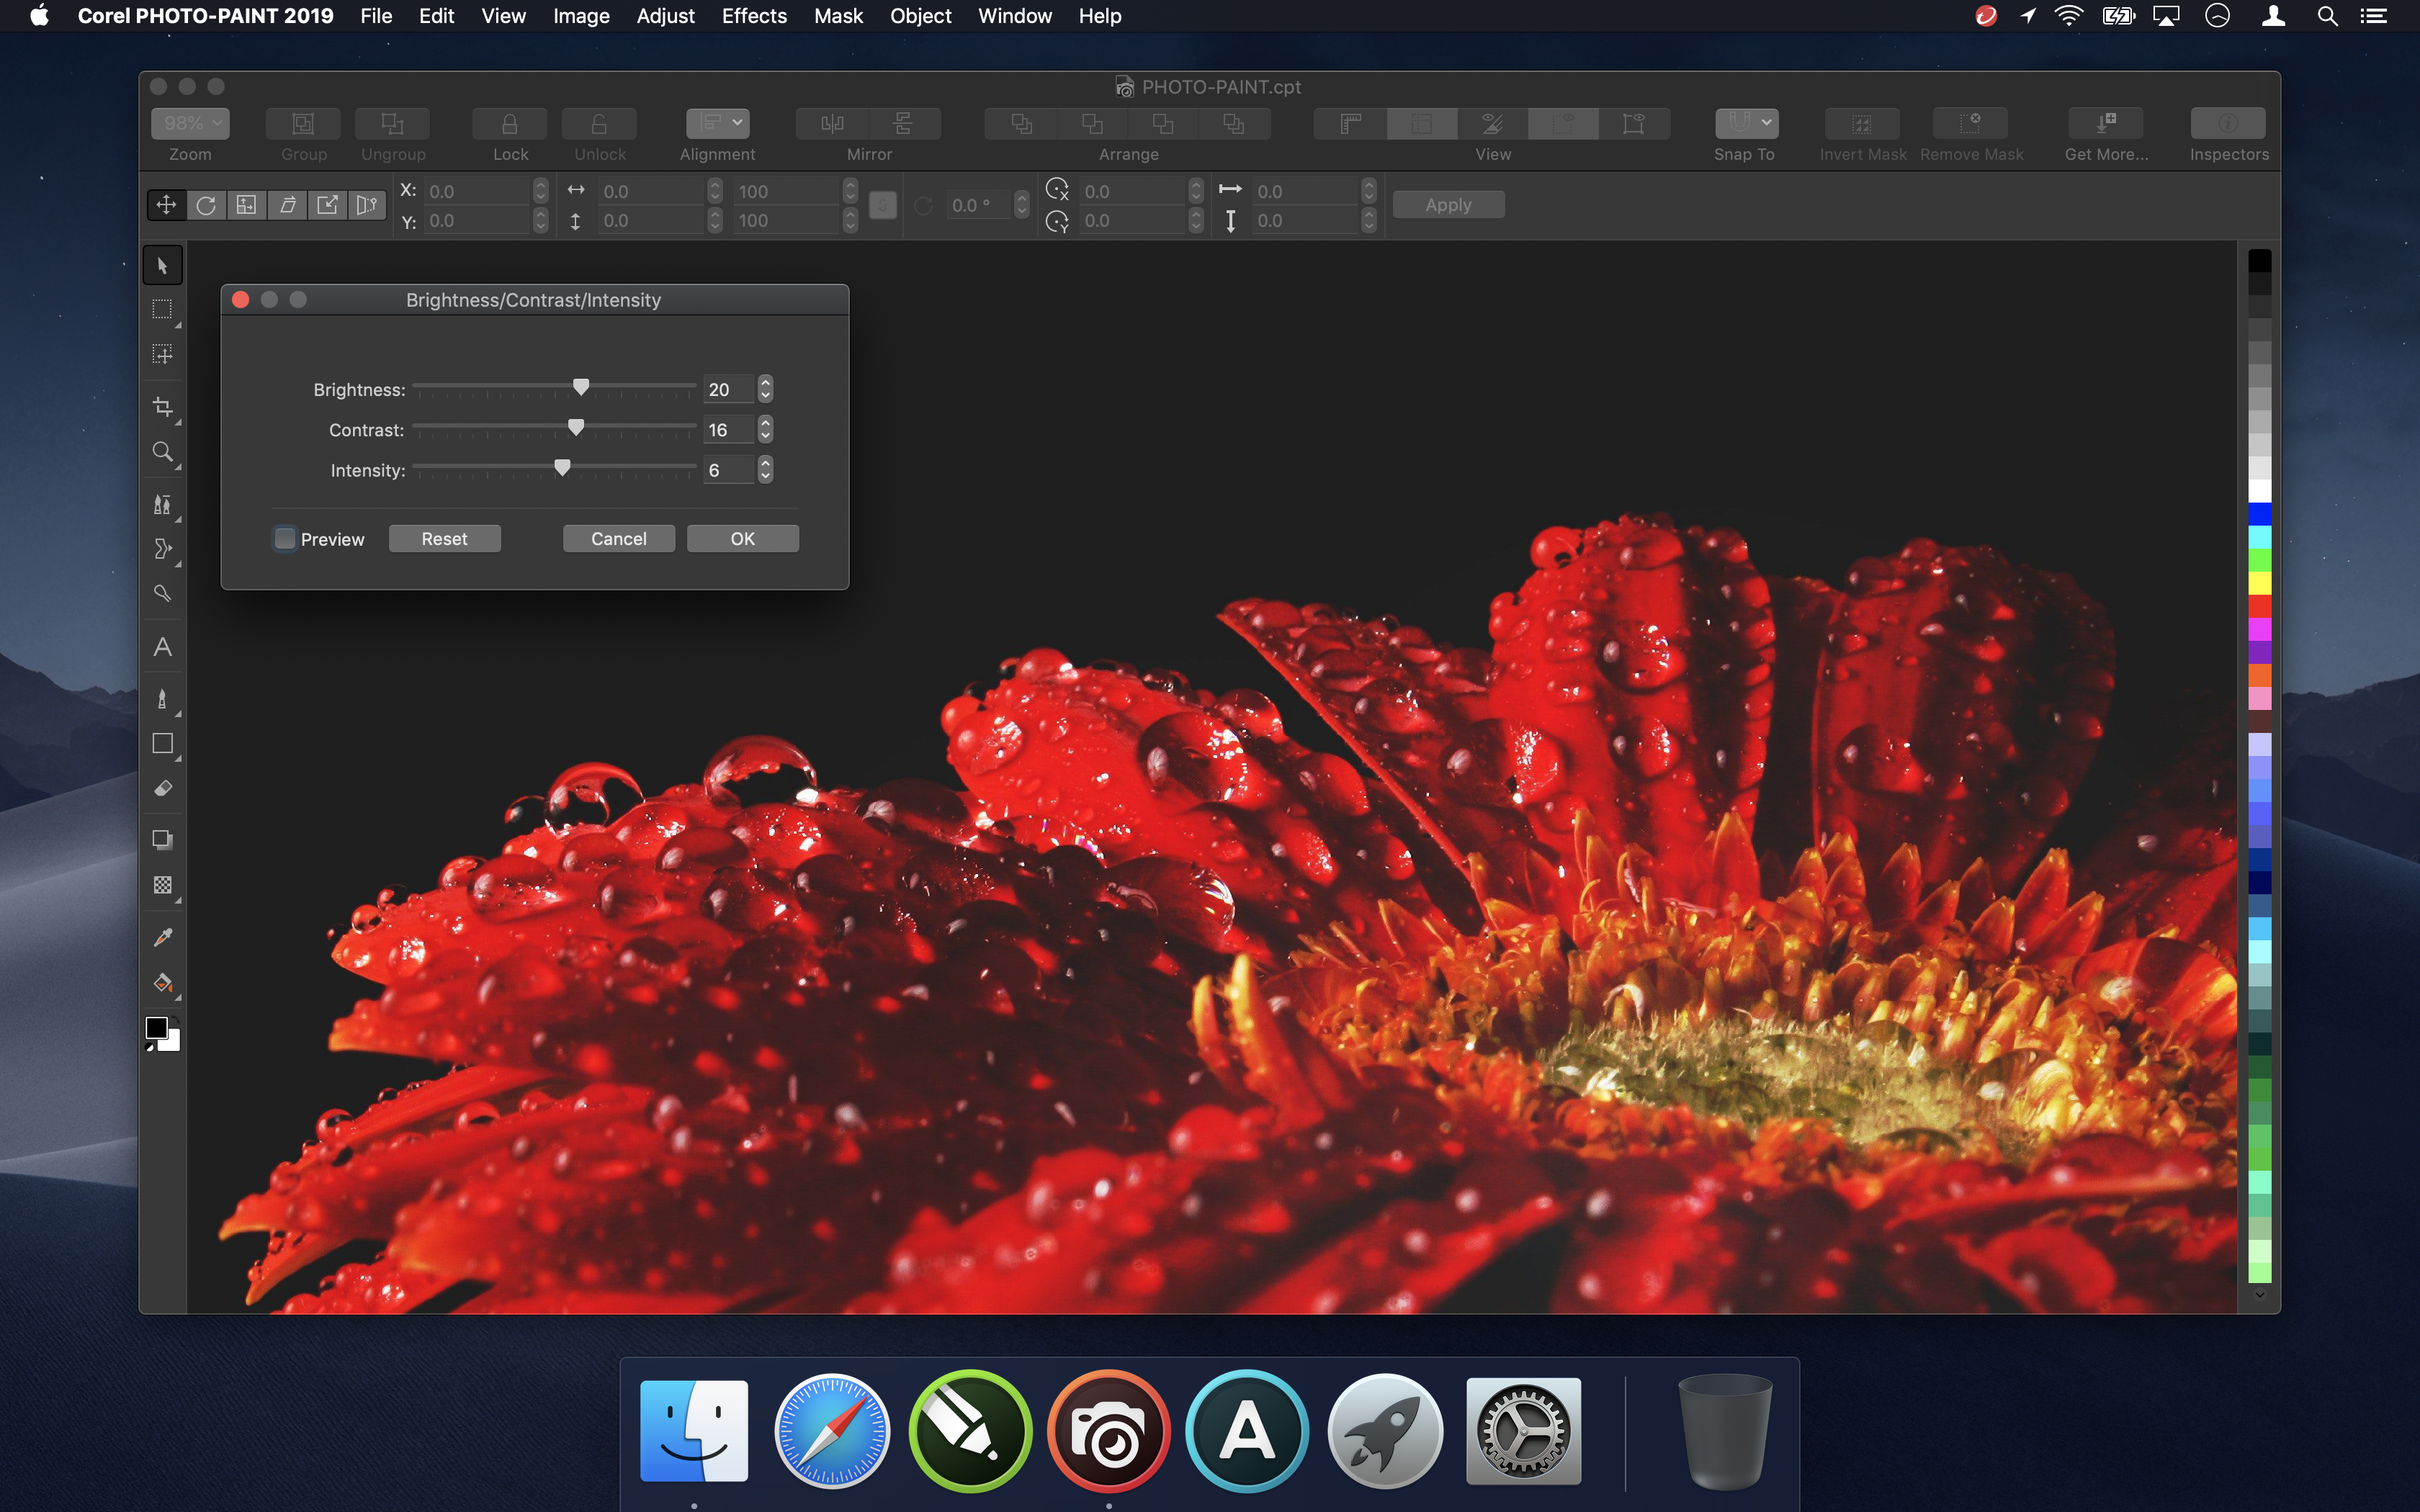 Corel PHOTO-PAINT 2019 for Mac